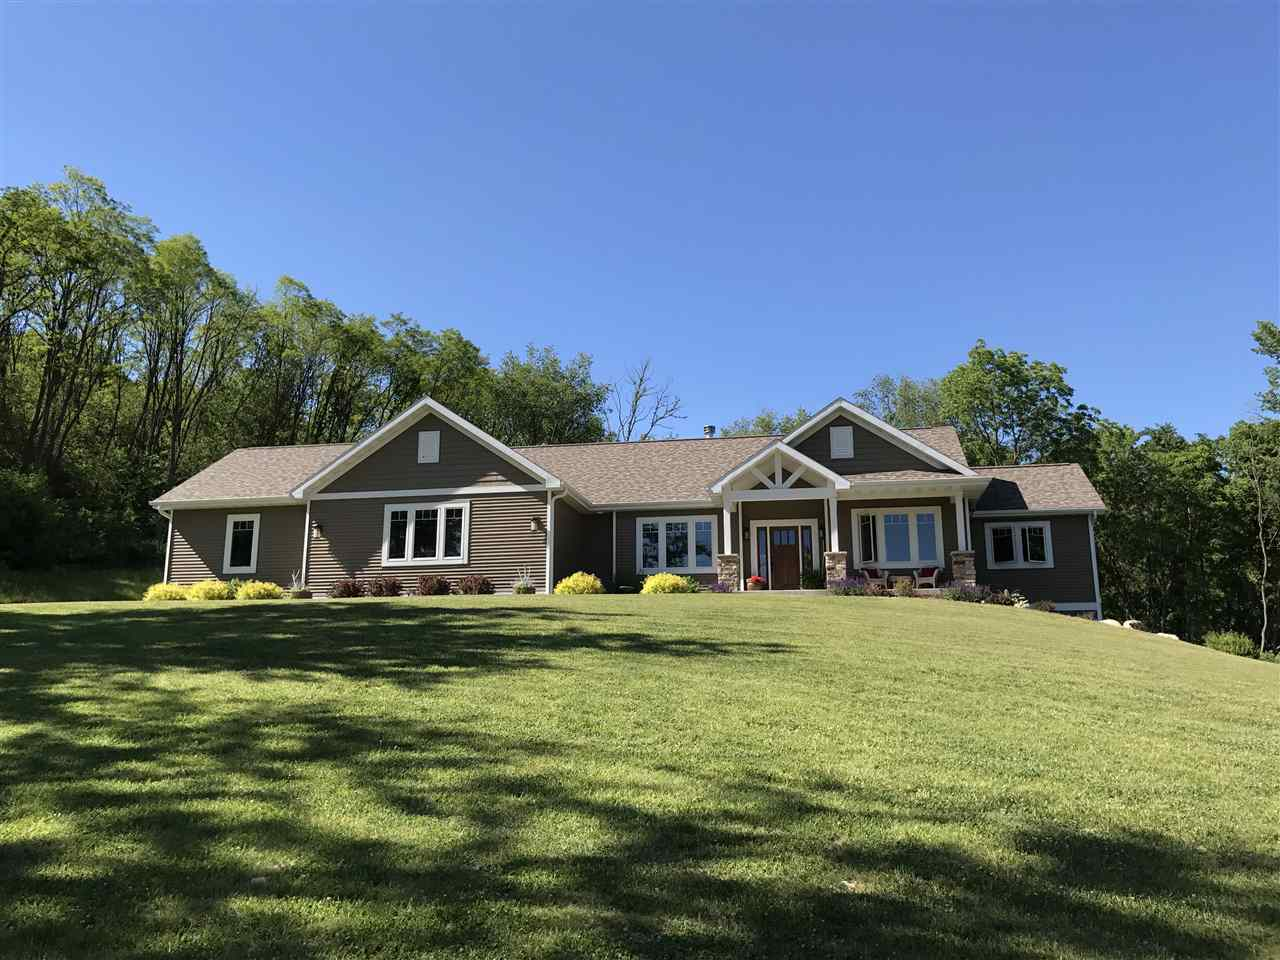 W12486 Wartner Rd, West Point, WI 53555